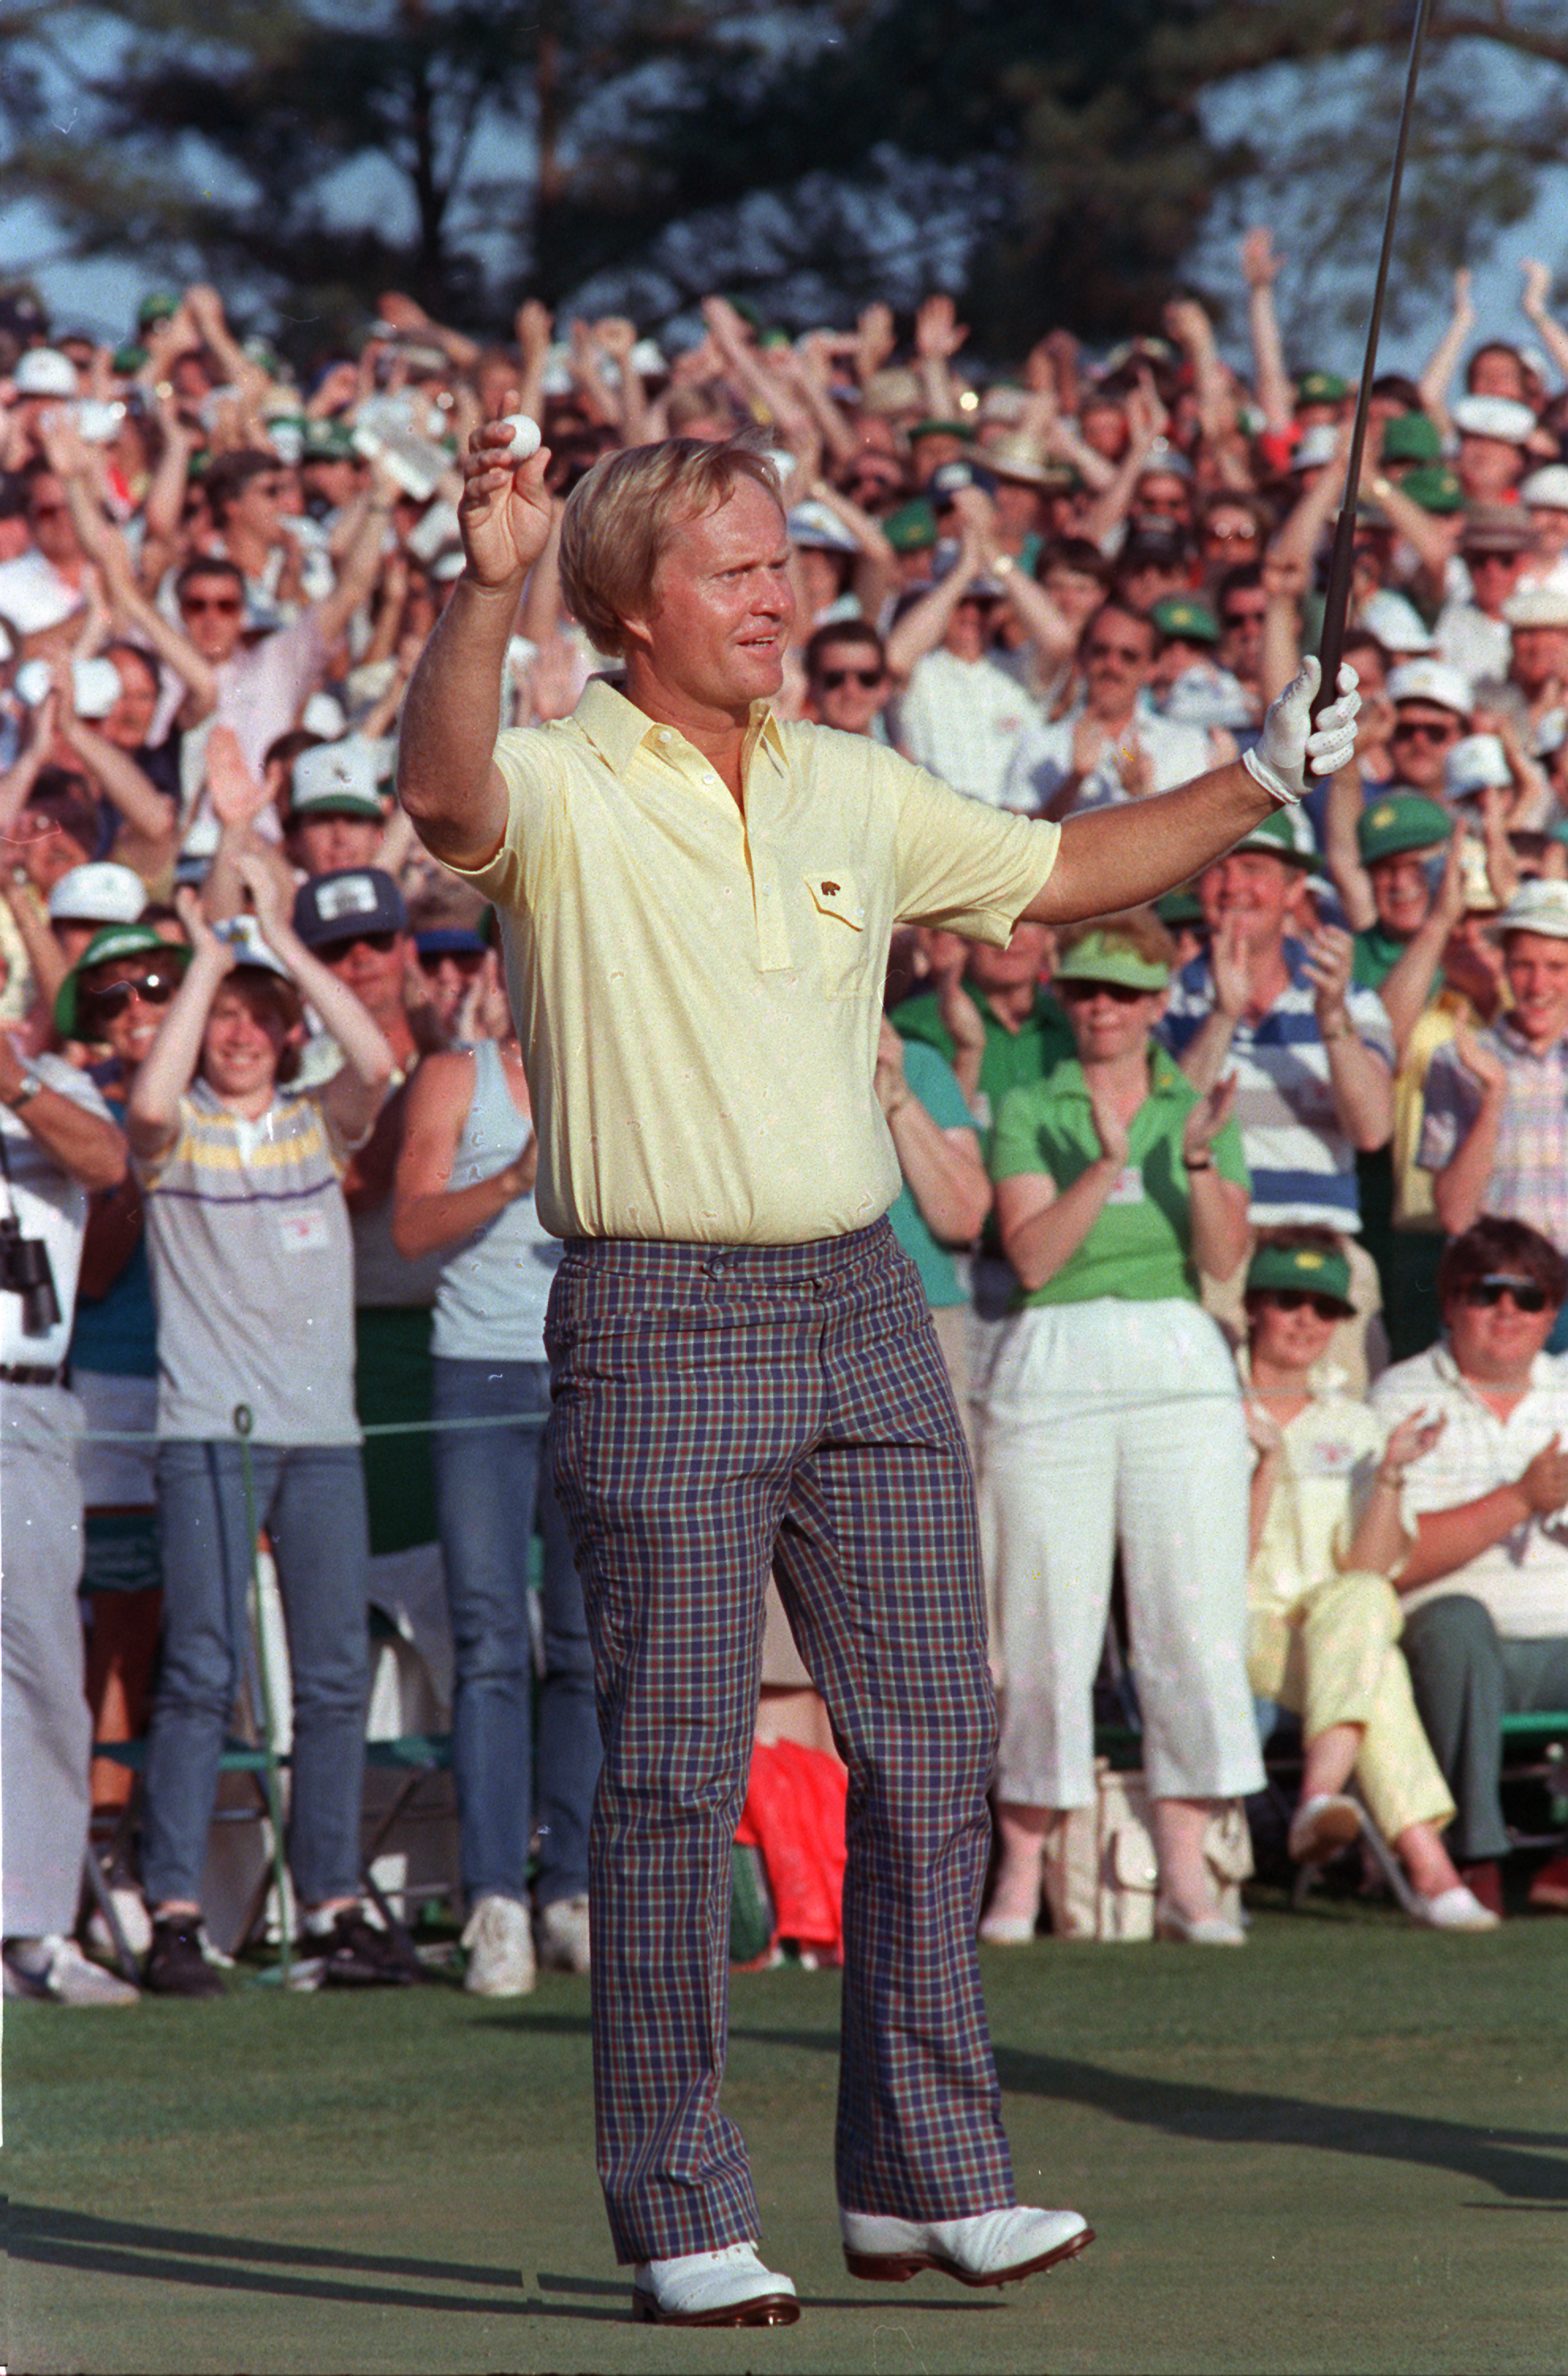 Jack Nicklaus reacts as he finishes on the 18th to win the Masters Championship at Augusta National Golf Club in Augusta, Ga., Sunday, April 14, 1986. This was his sixth Masters victory.